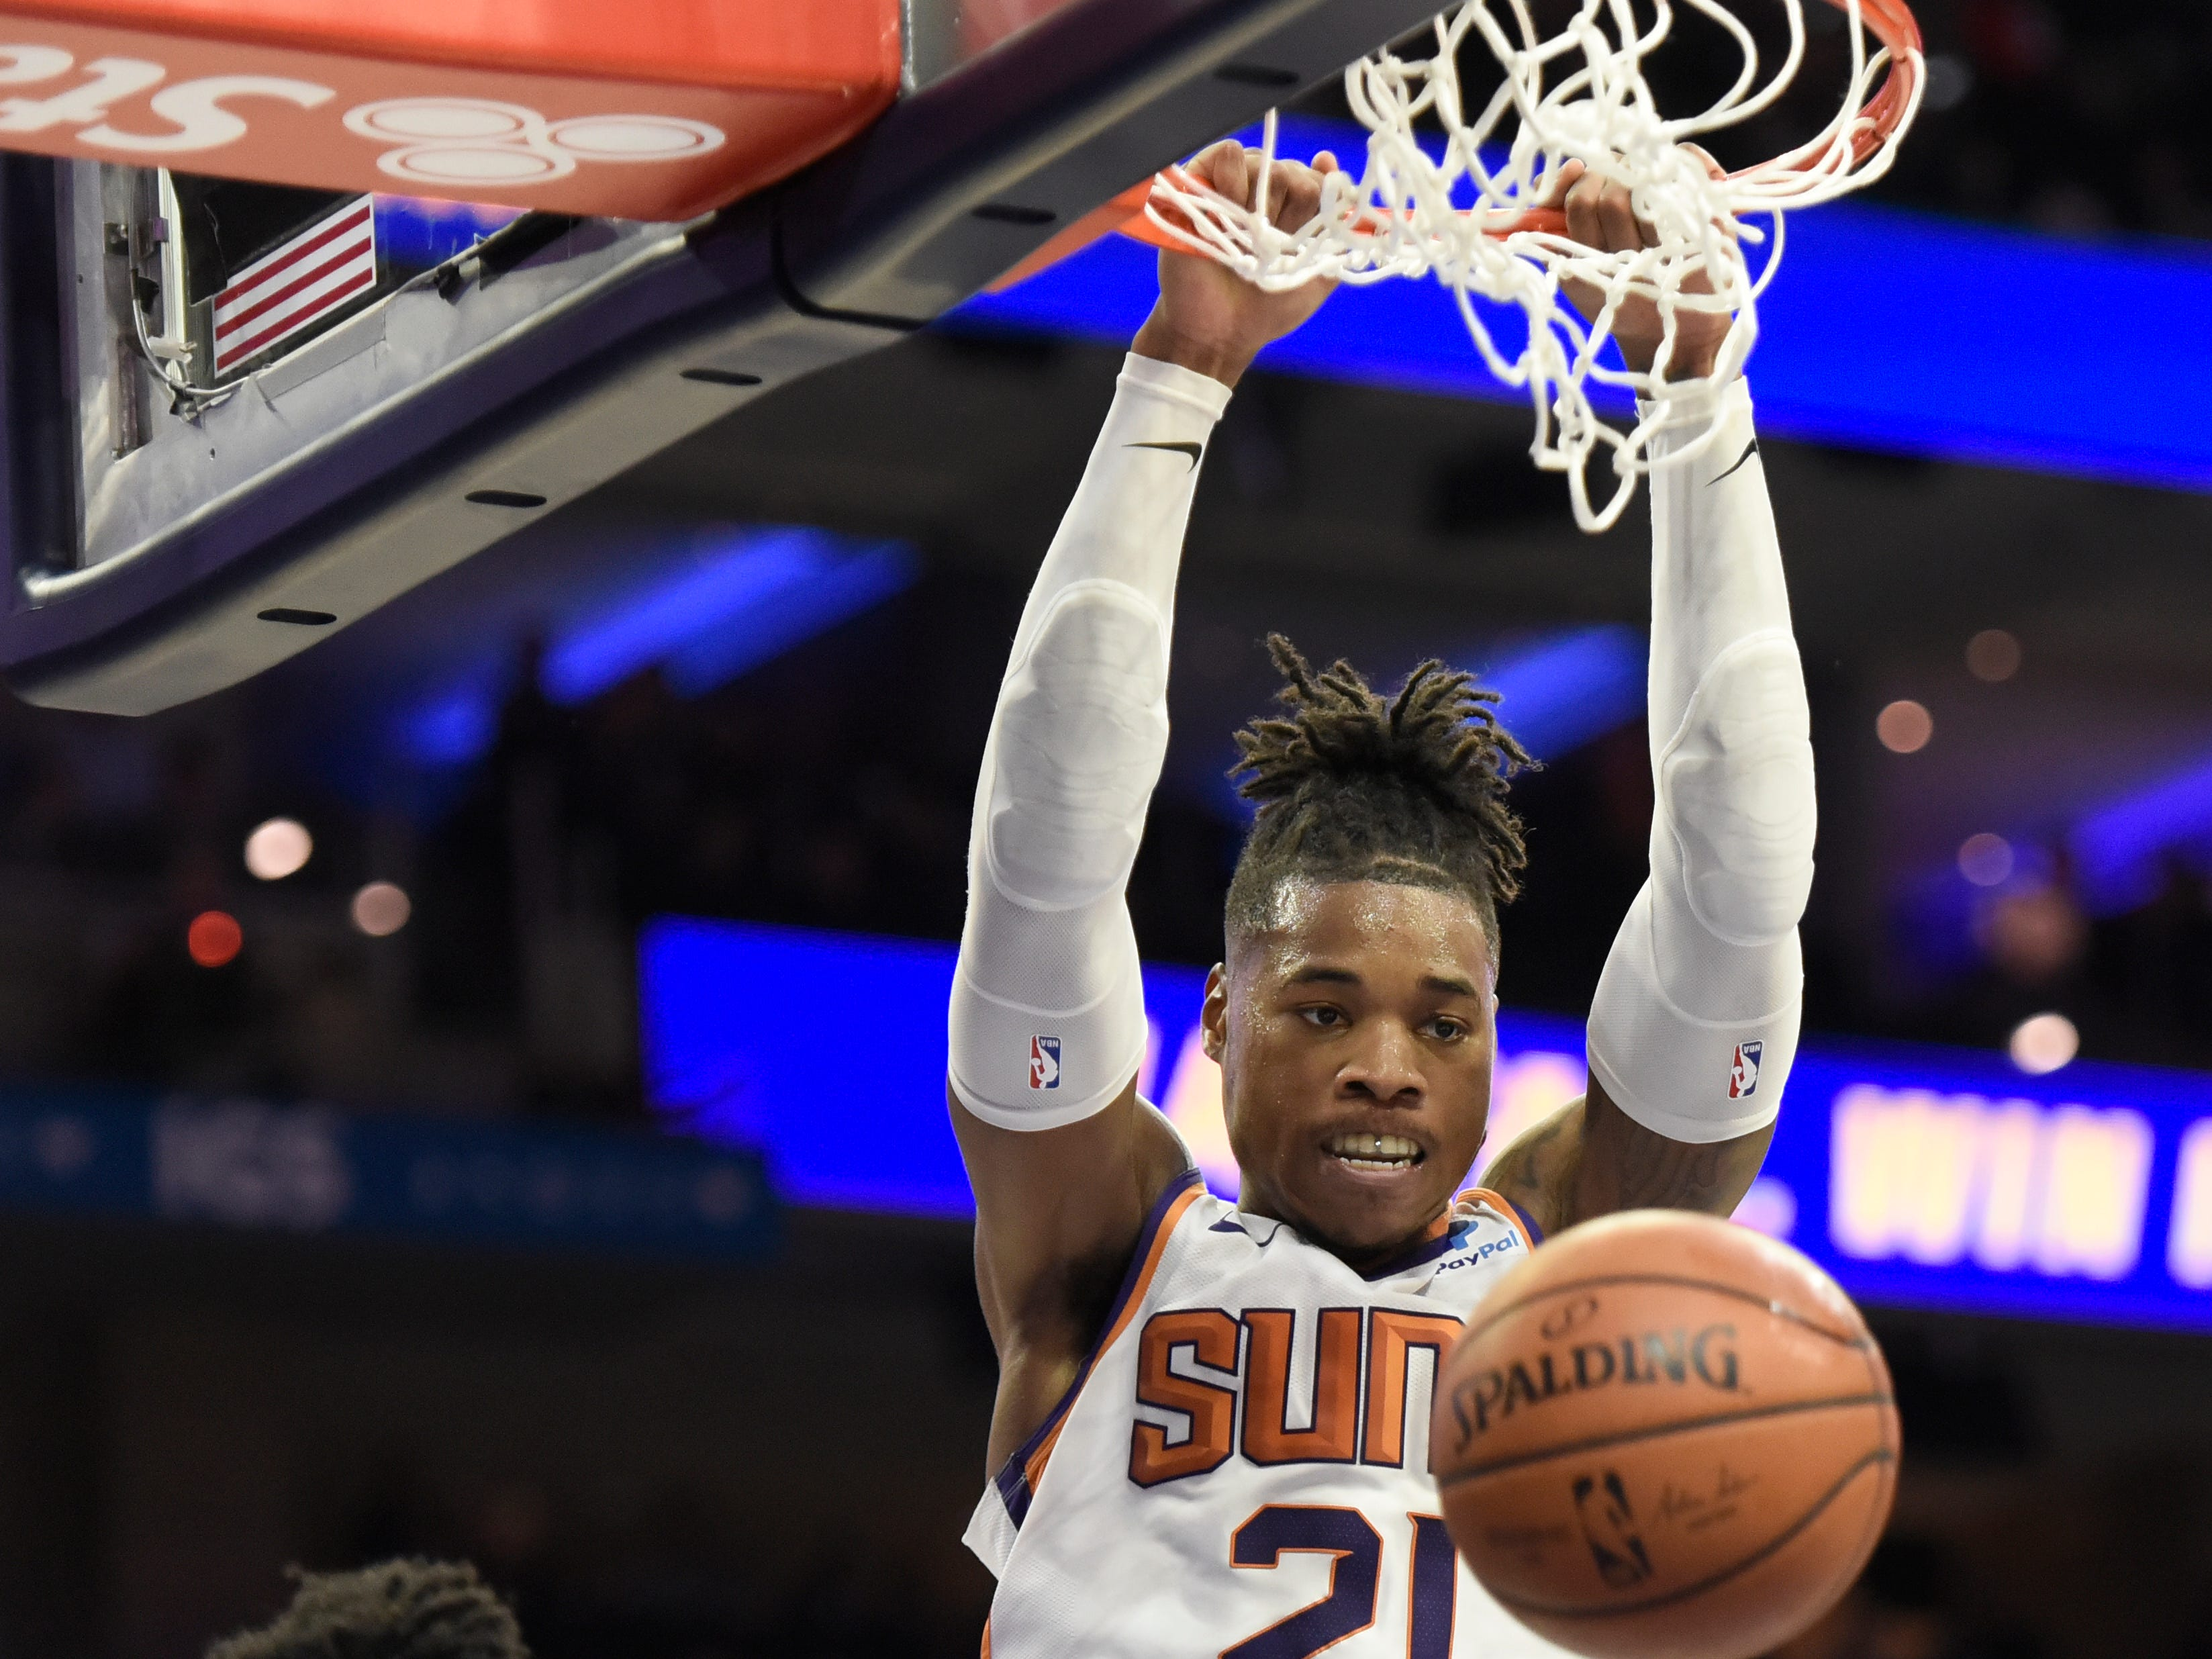 Phoenix Suns' Richaun Holmes (21) dunks the ball over Philadelphia 76ers' Joel Embiid (21) in the first half of an NBA basketball game, Monday, Nov. 19, 2018, in Philadelphia. (AP Photo/Michael Perez)